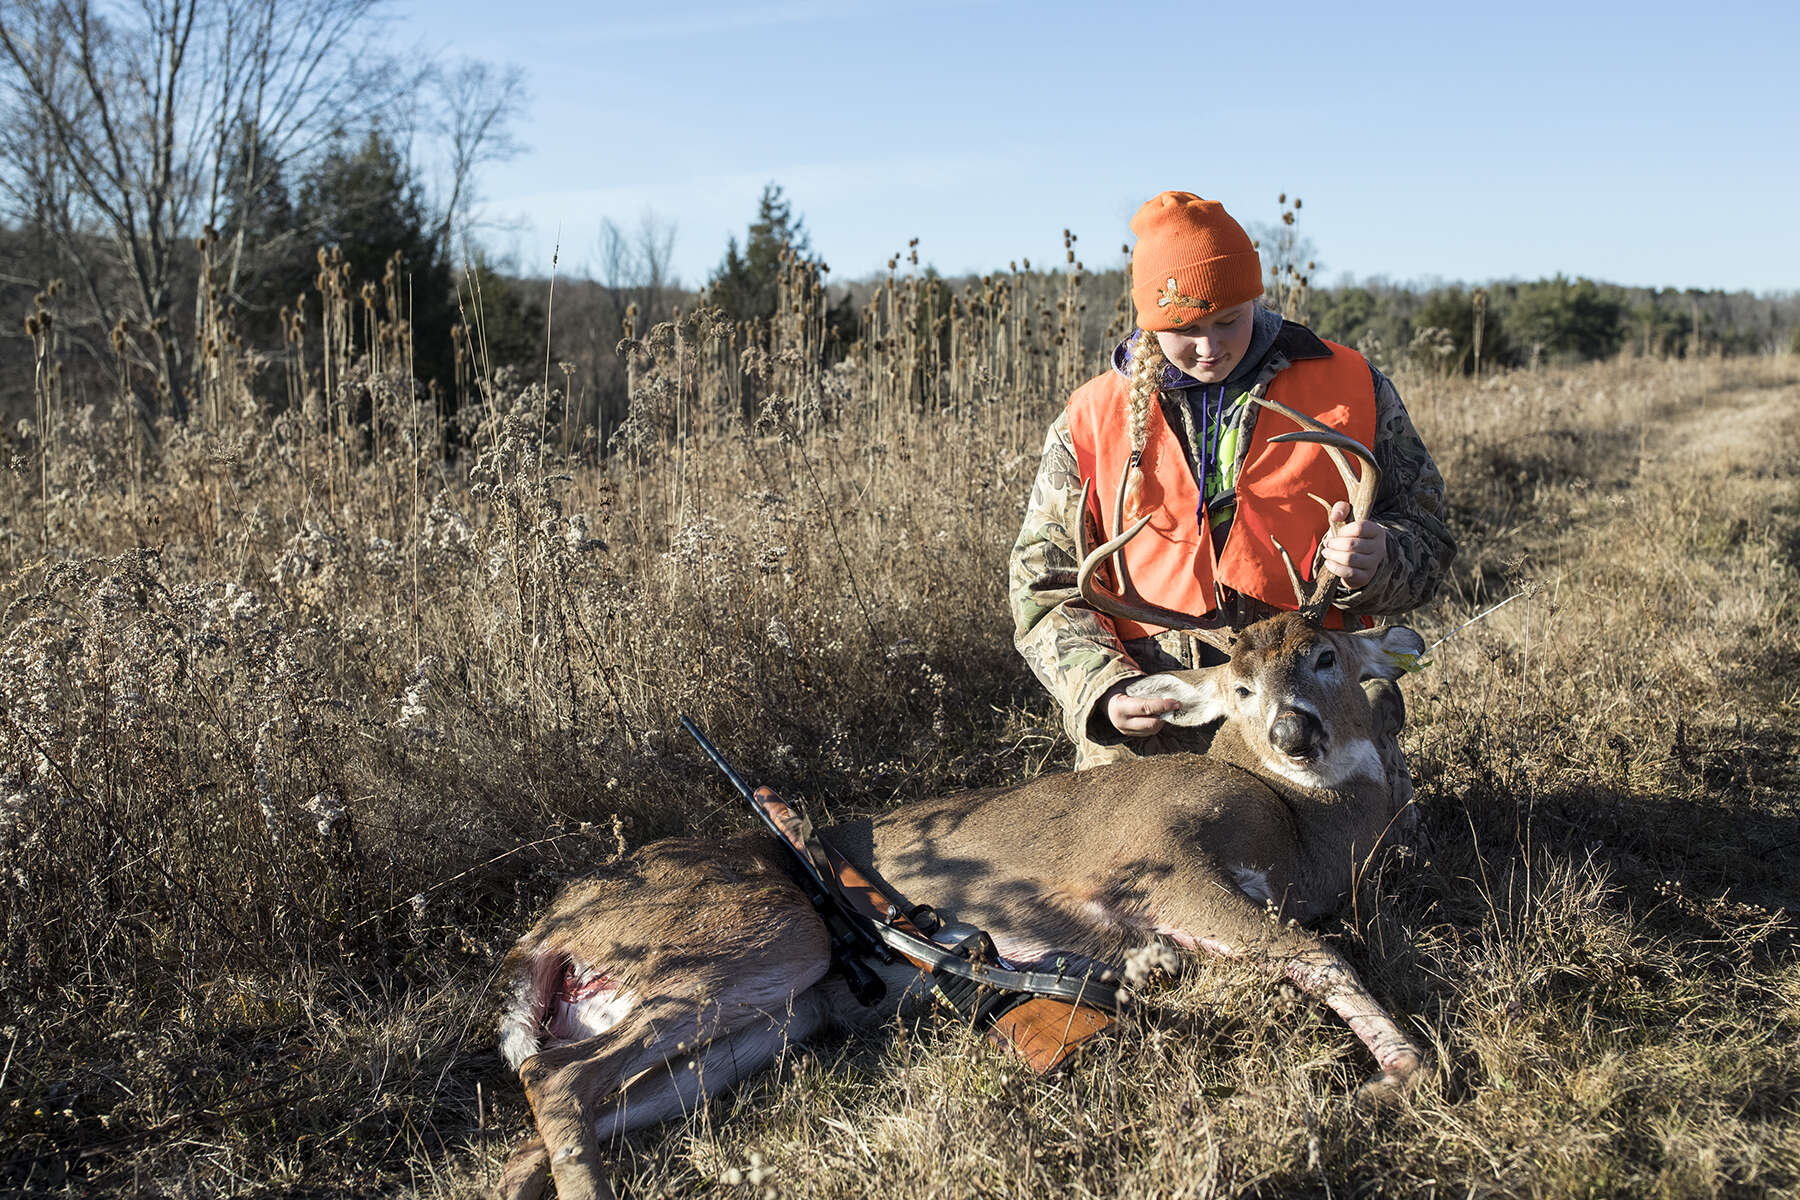 Meredith Cole, age 13, looks at a deer she shot on opening day of deer rifle hunting season in Troy, Penn., on Monday, November 27, 2017. Deer hunting is such an important part of the culture in this part of rural Pennsylvania that the Troy Area School District cancels school the first two days of deer rifle season so children can hunt with their families. Meredith is over the age of 12 and has passed a hunter safety course and is therefore allowed to hunt while carrying her own gun as long as she is in the presence of a licensed adult. She went hunting with her grandfather and was later joined by her brother and father to search for the deer.